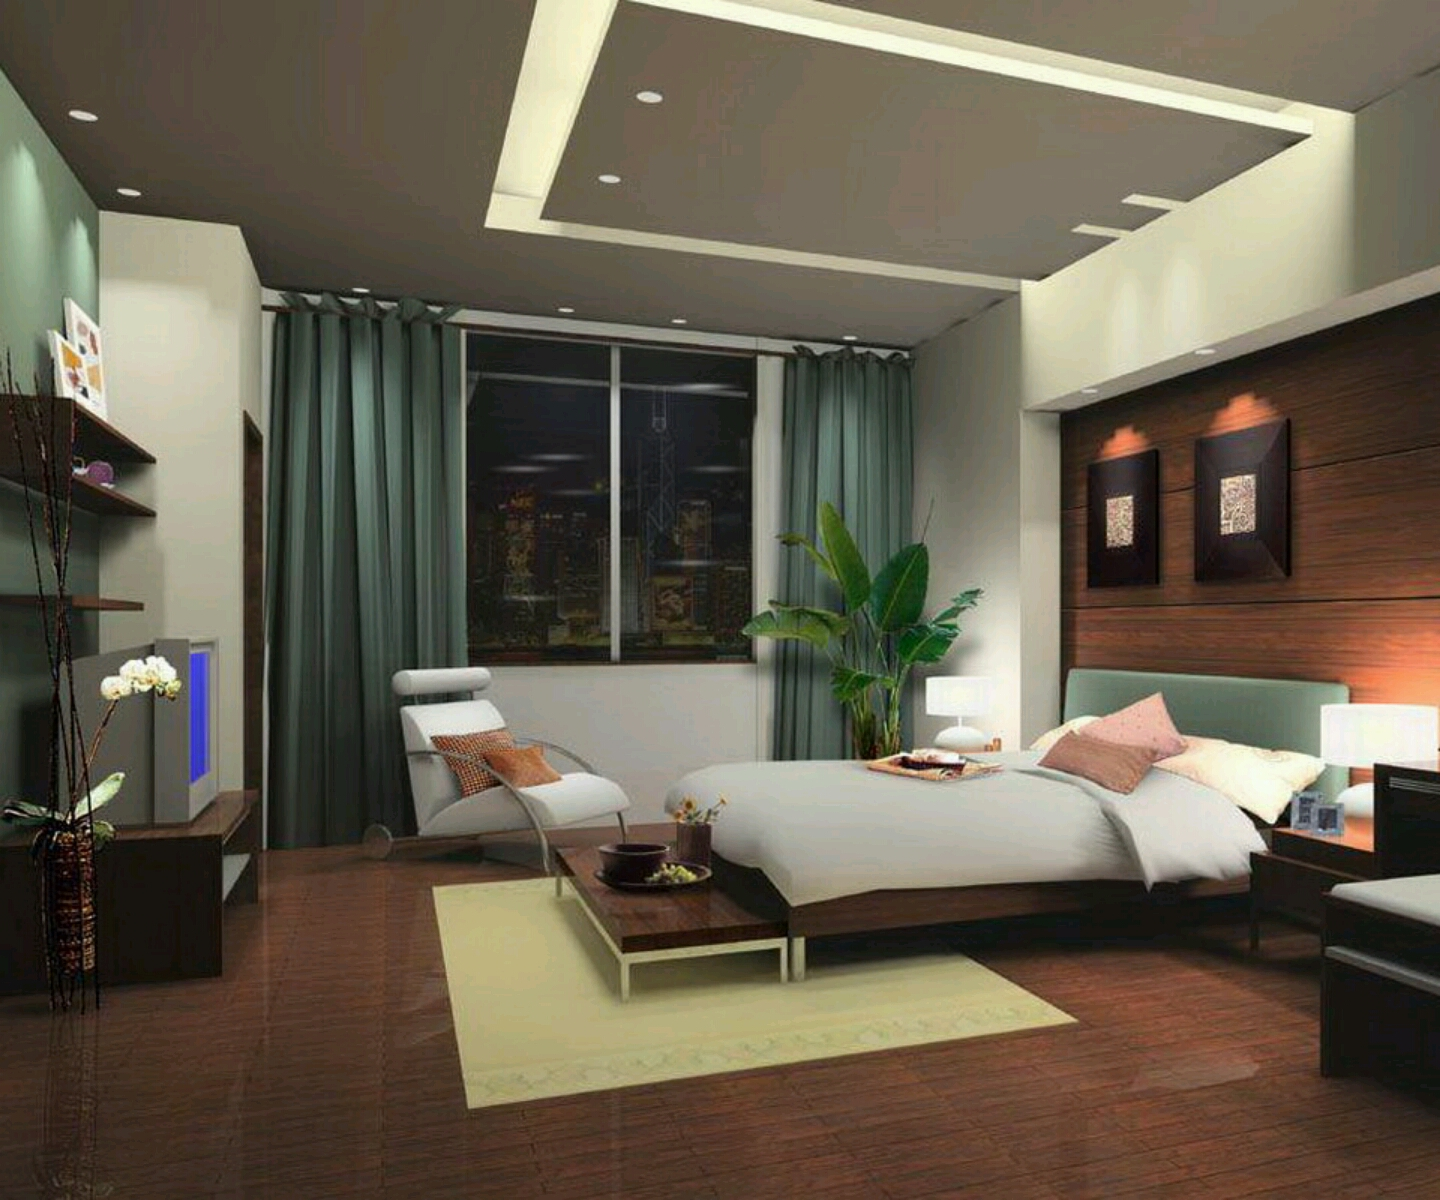 New home designs latest modern bedrooms designs best ideas for Best interior designs for bedroom